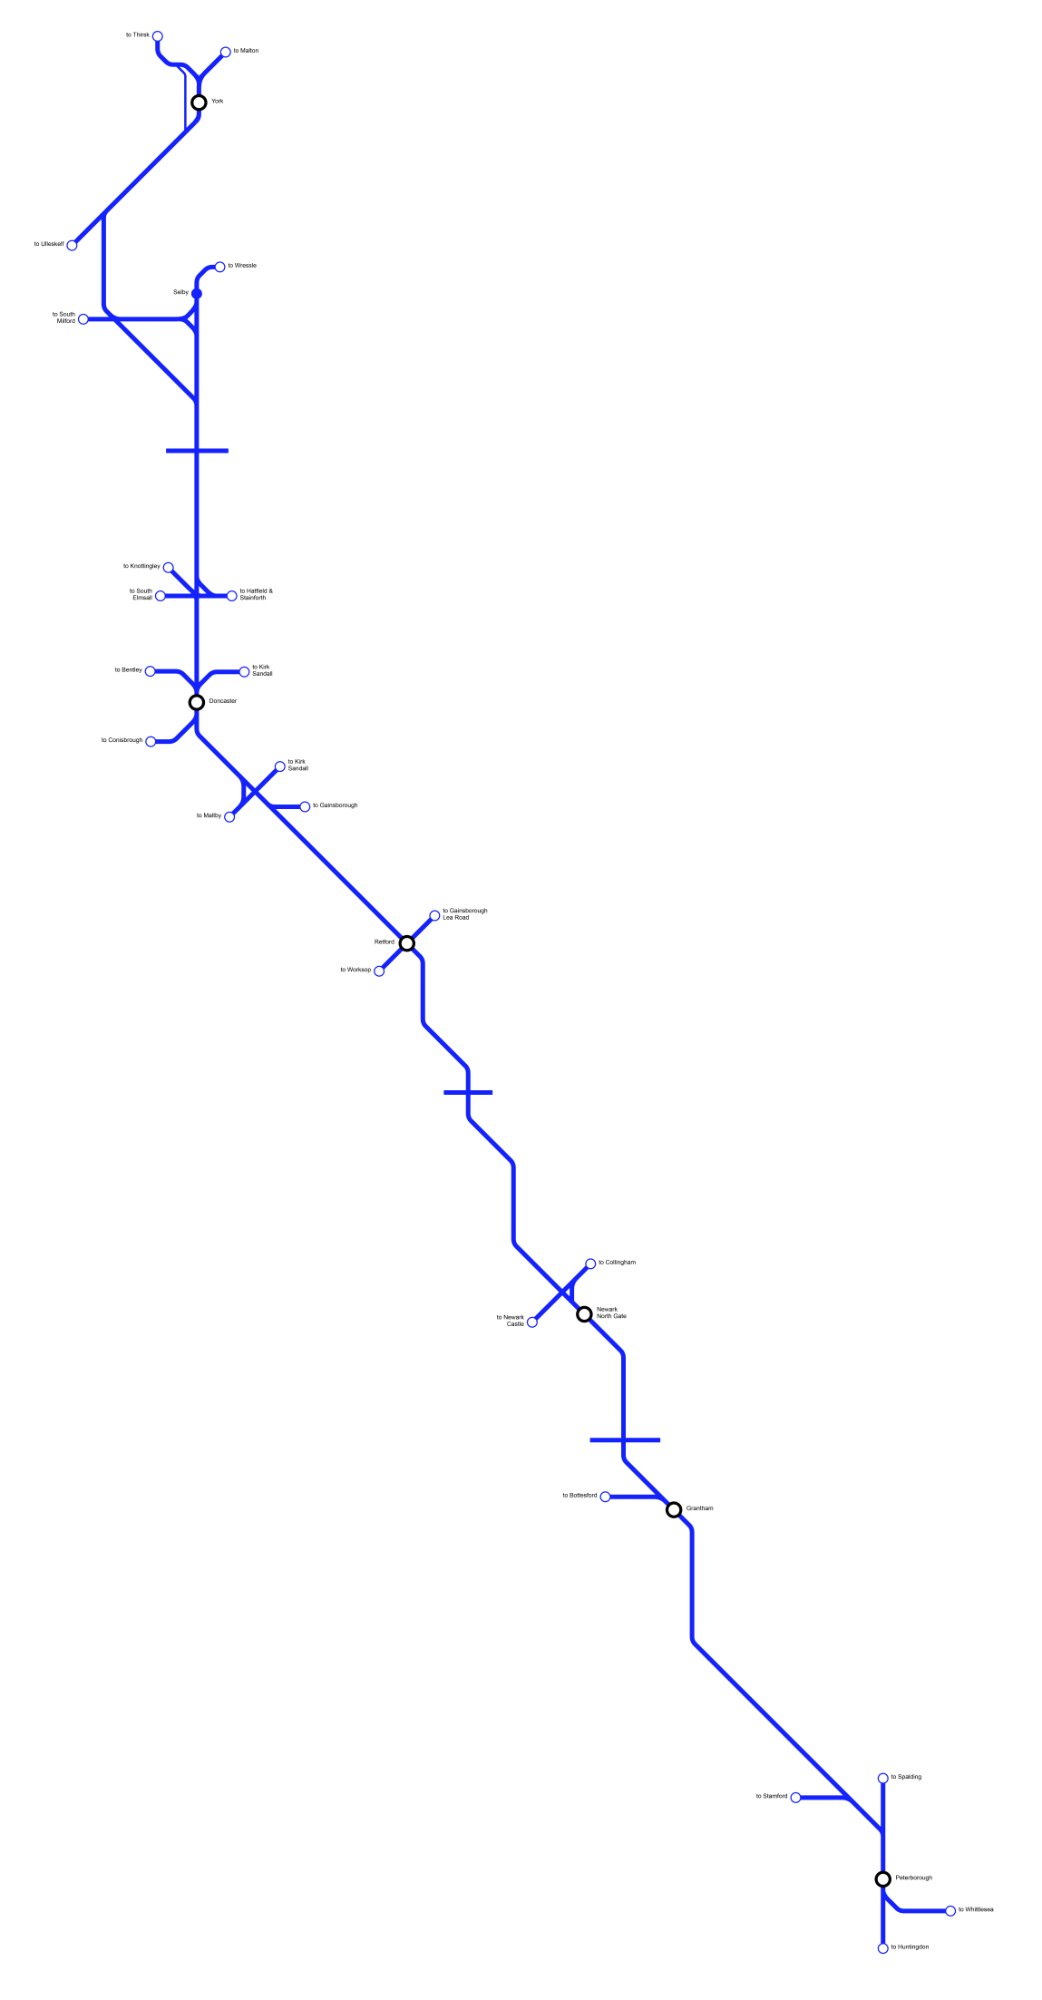 Image showing a map of the East Coast Main Line Modern: York - Peterborough route